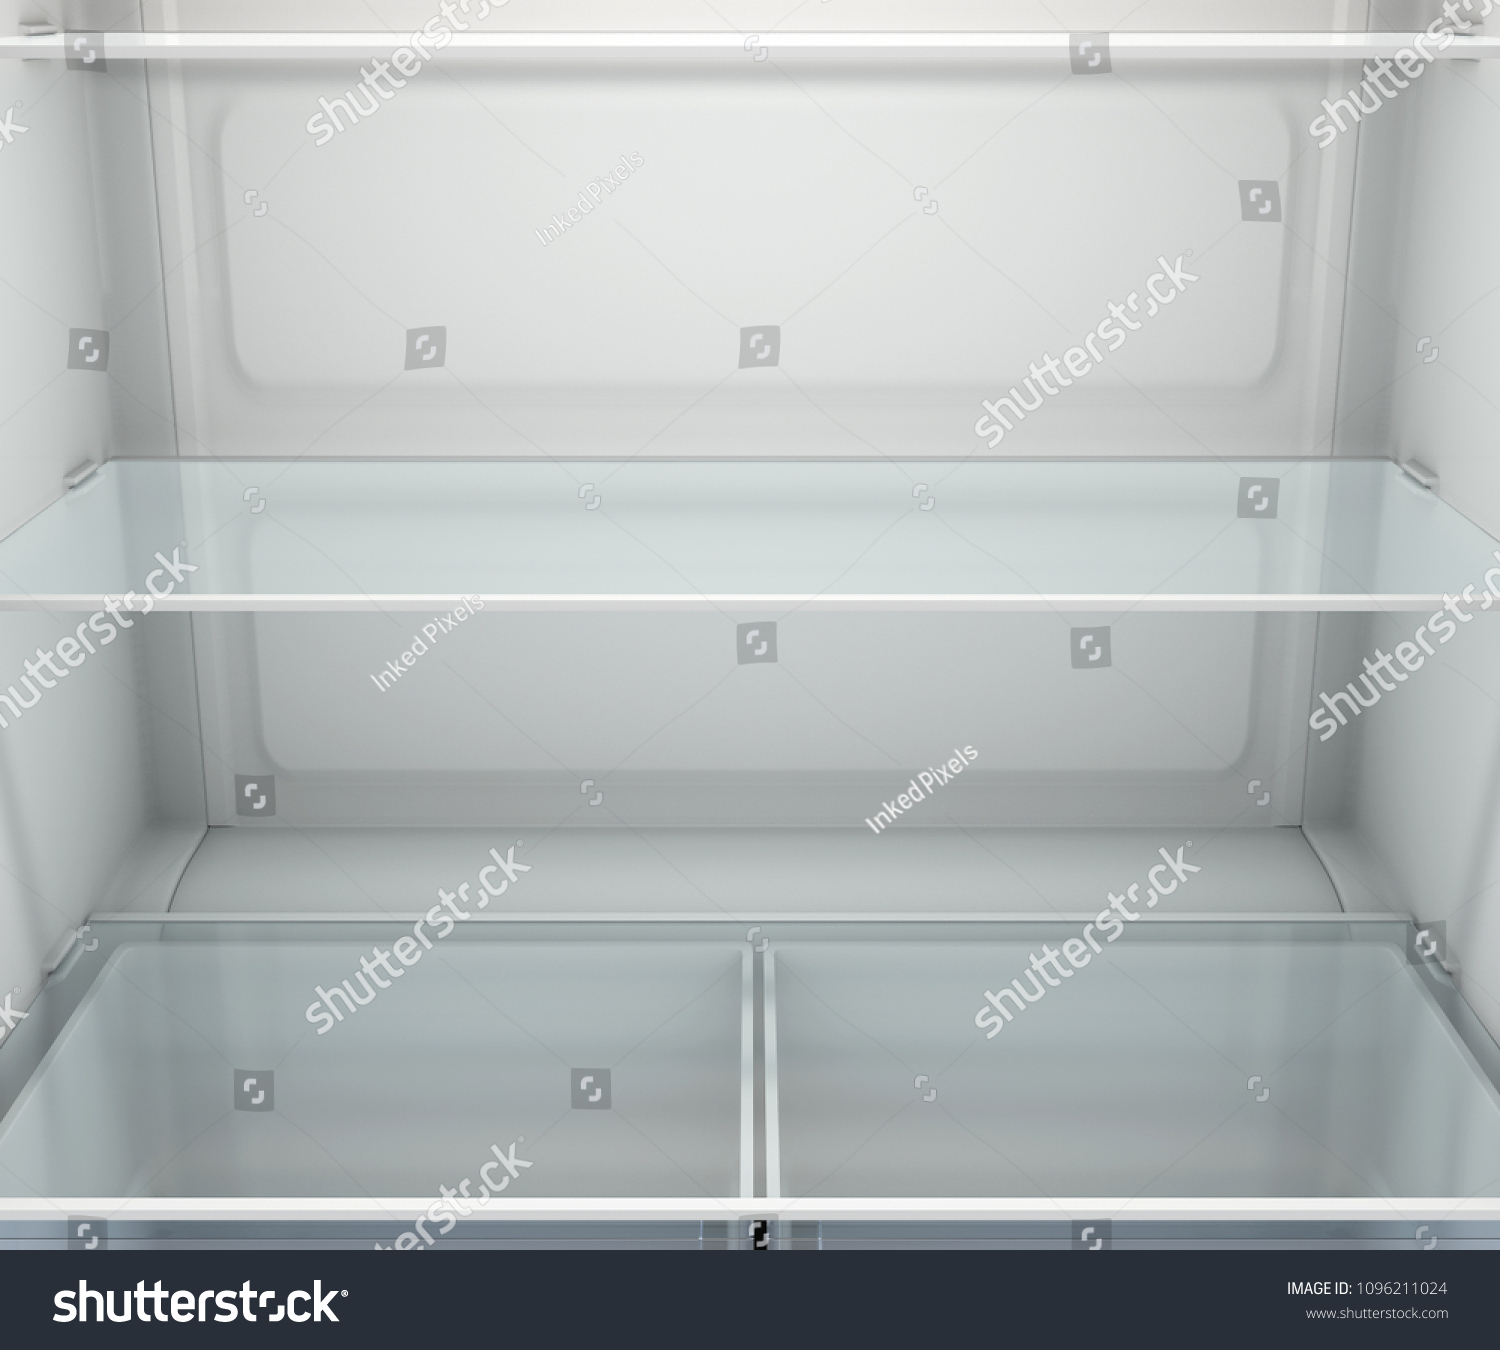 A View Inside An Empty Household Fridge Or Freezer With